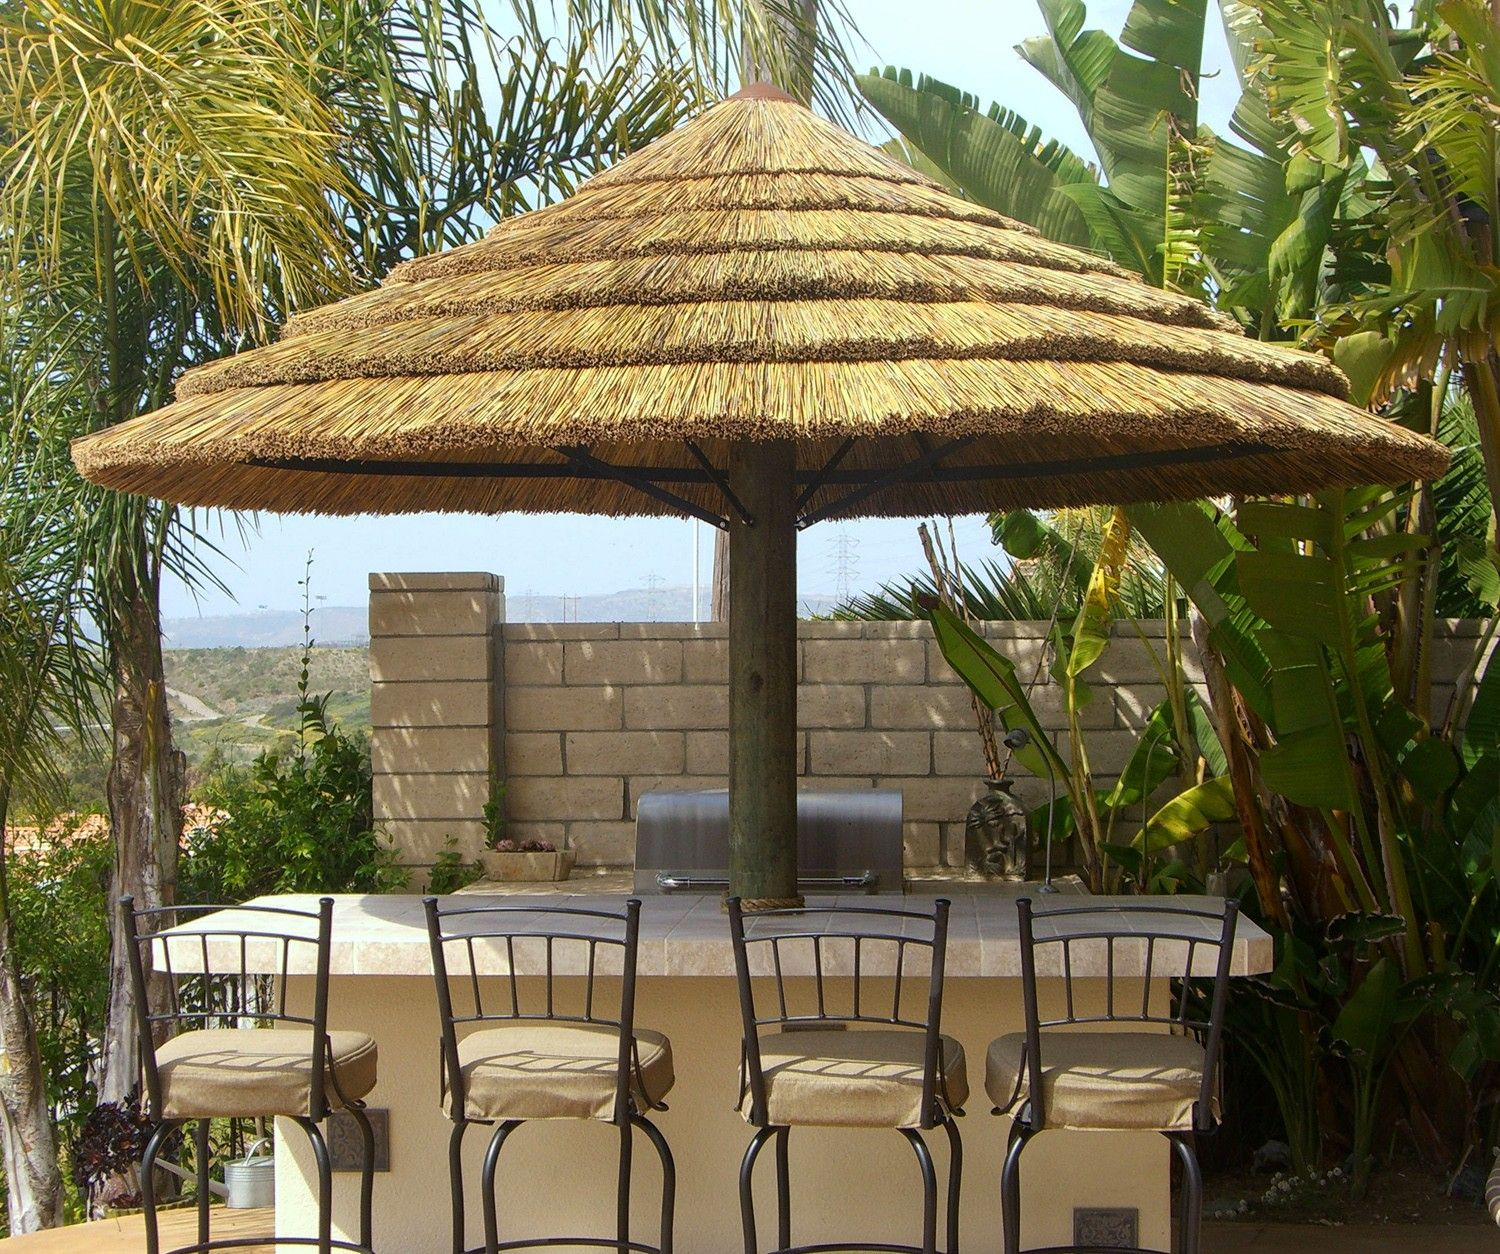 Africa Thatch Reed Umbrella Kit 7 Backyard X Scapes Offers Multiple Sizes  Of Thatch Umbrella Kits Constructed Of The Finest African Thatch Reed  Available.